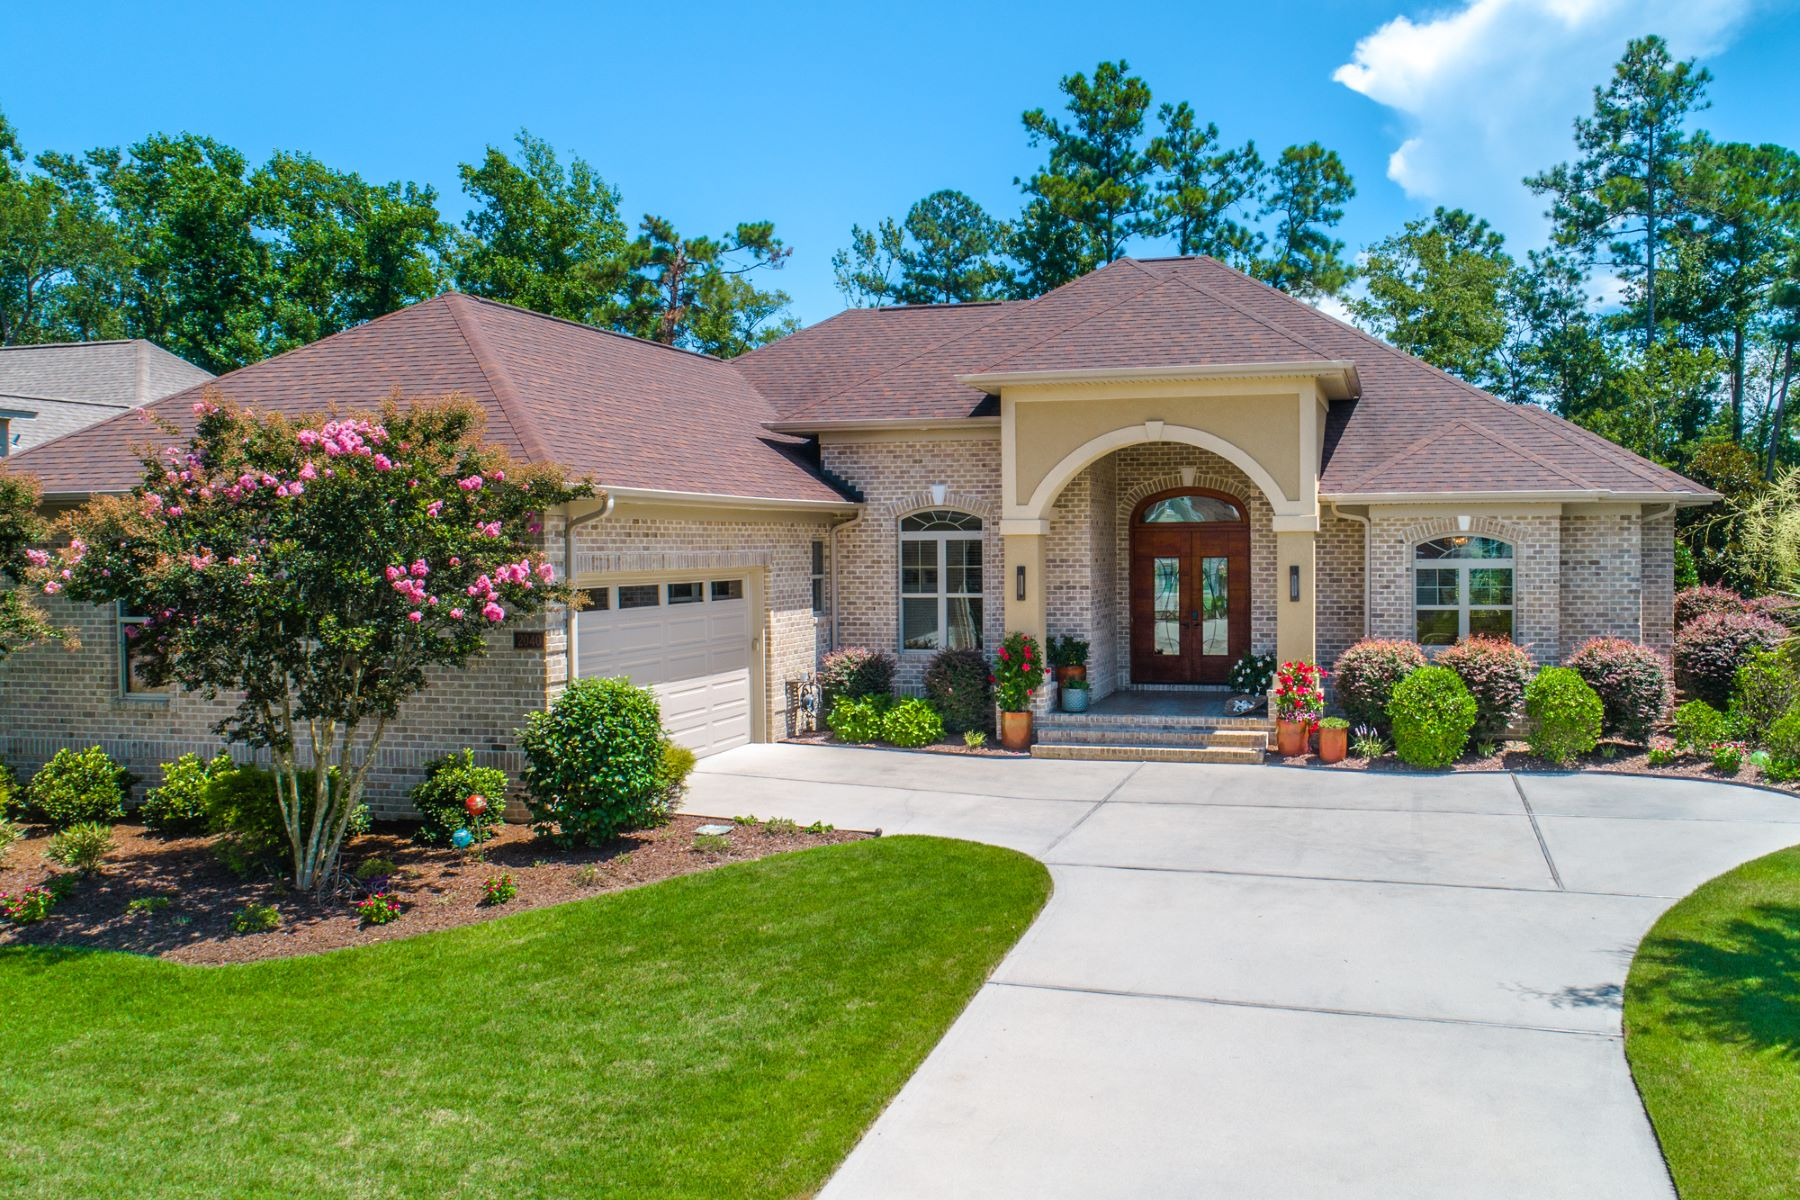 Single Family Homes for Active at Home Ideally Situated in Private Cul-de-sac 2040 Chartwell Court Leland, North Carolina 28451 United States